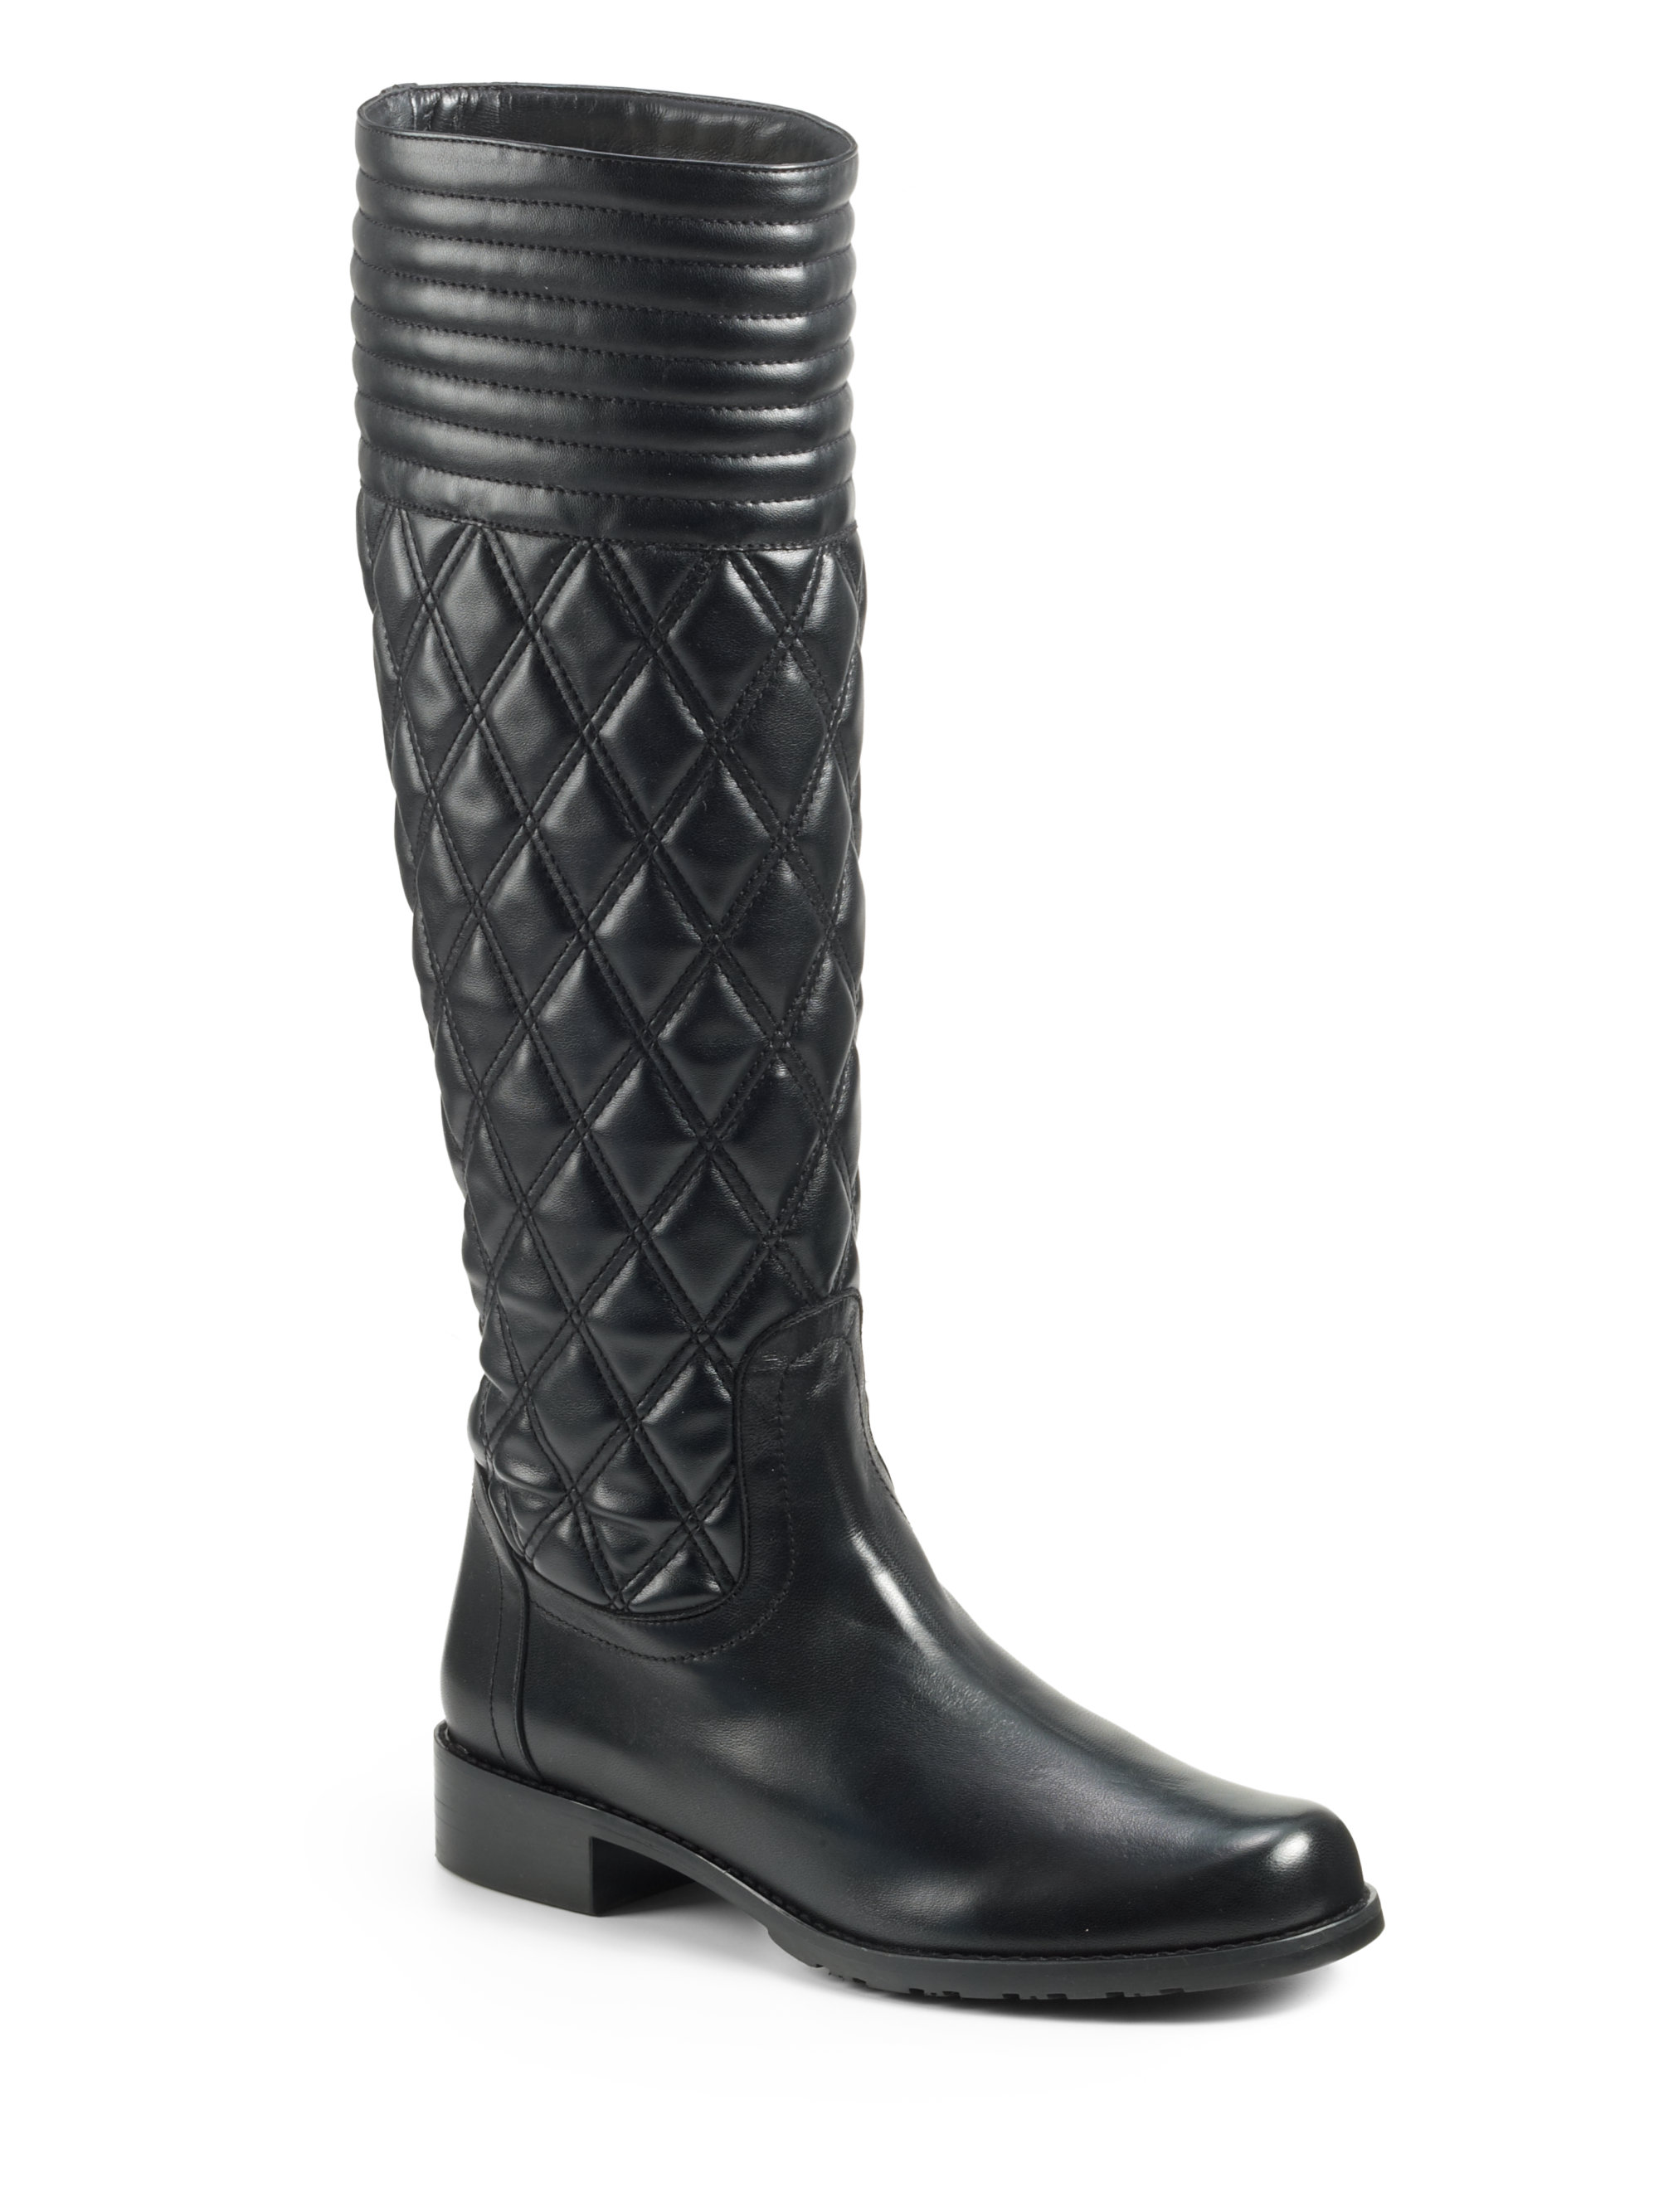 Lyst Stuart Weitzman Clute Quilted Leather Flat Boots In